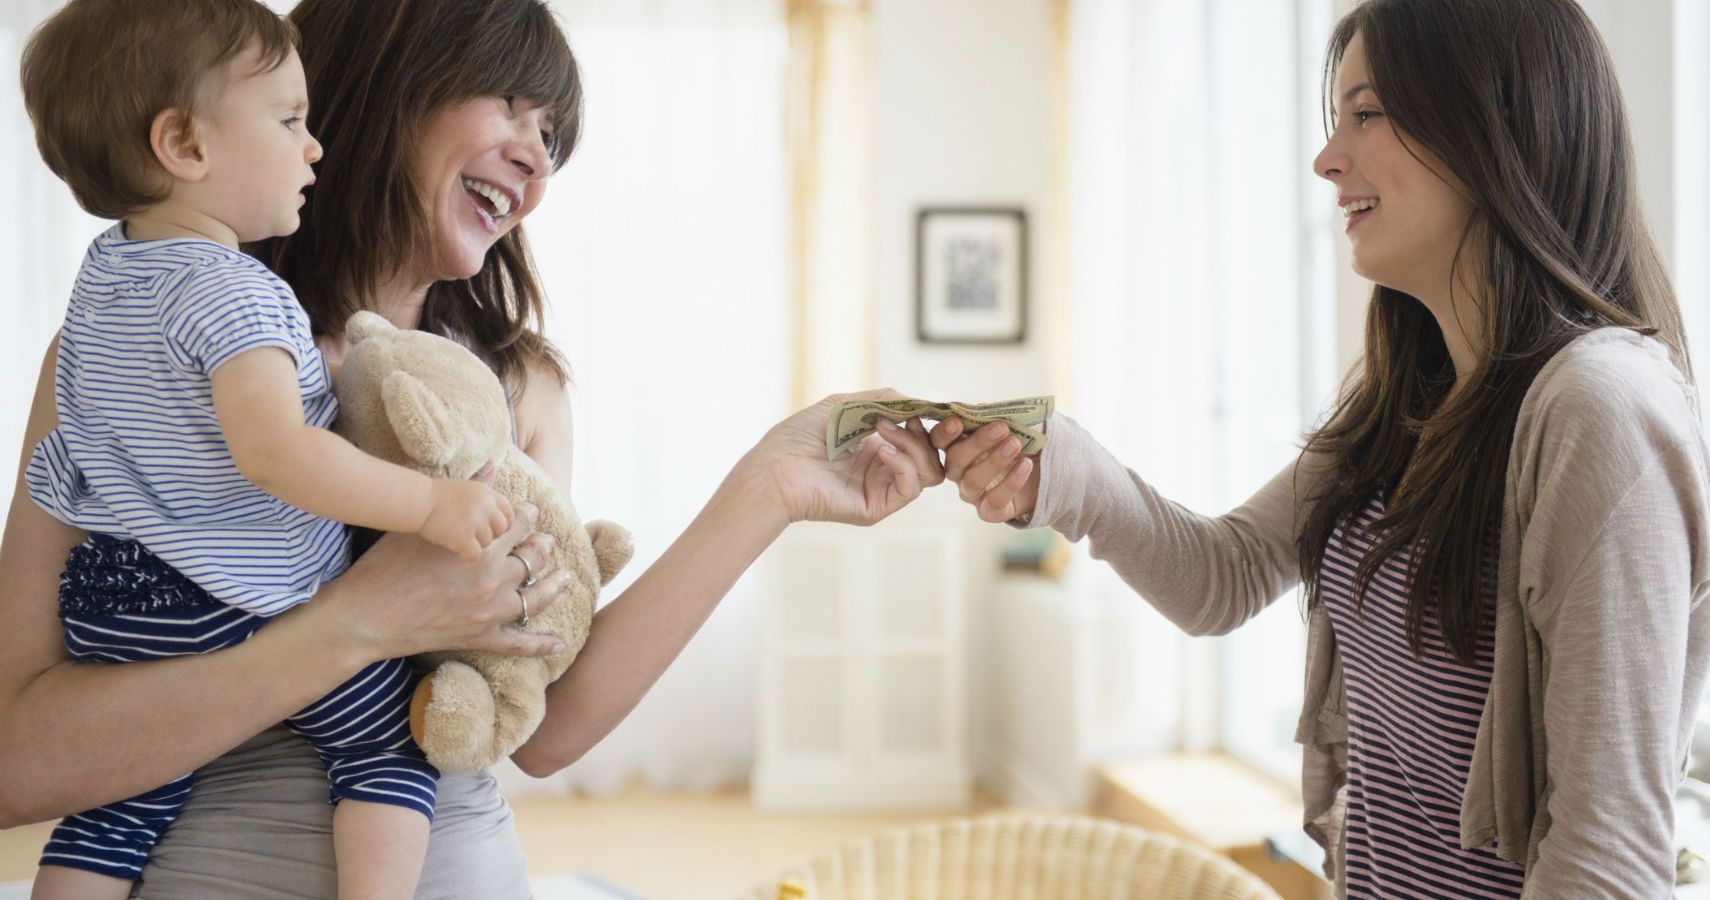 weirdest rules today u0026 39 s parents give babysitters